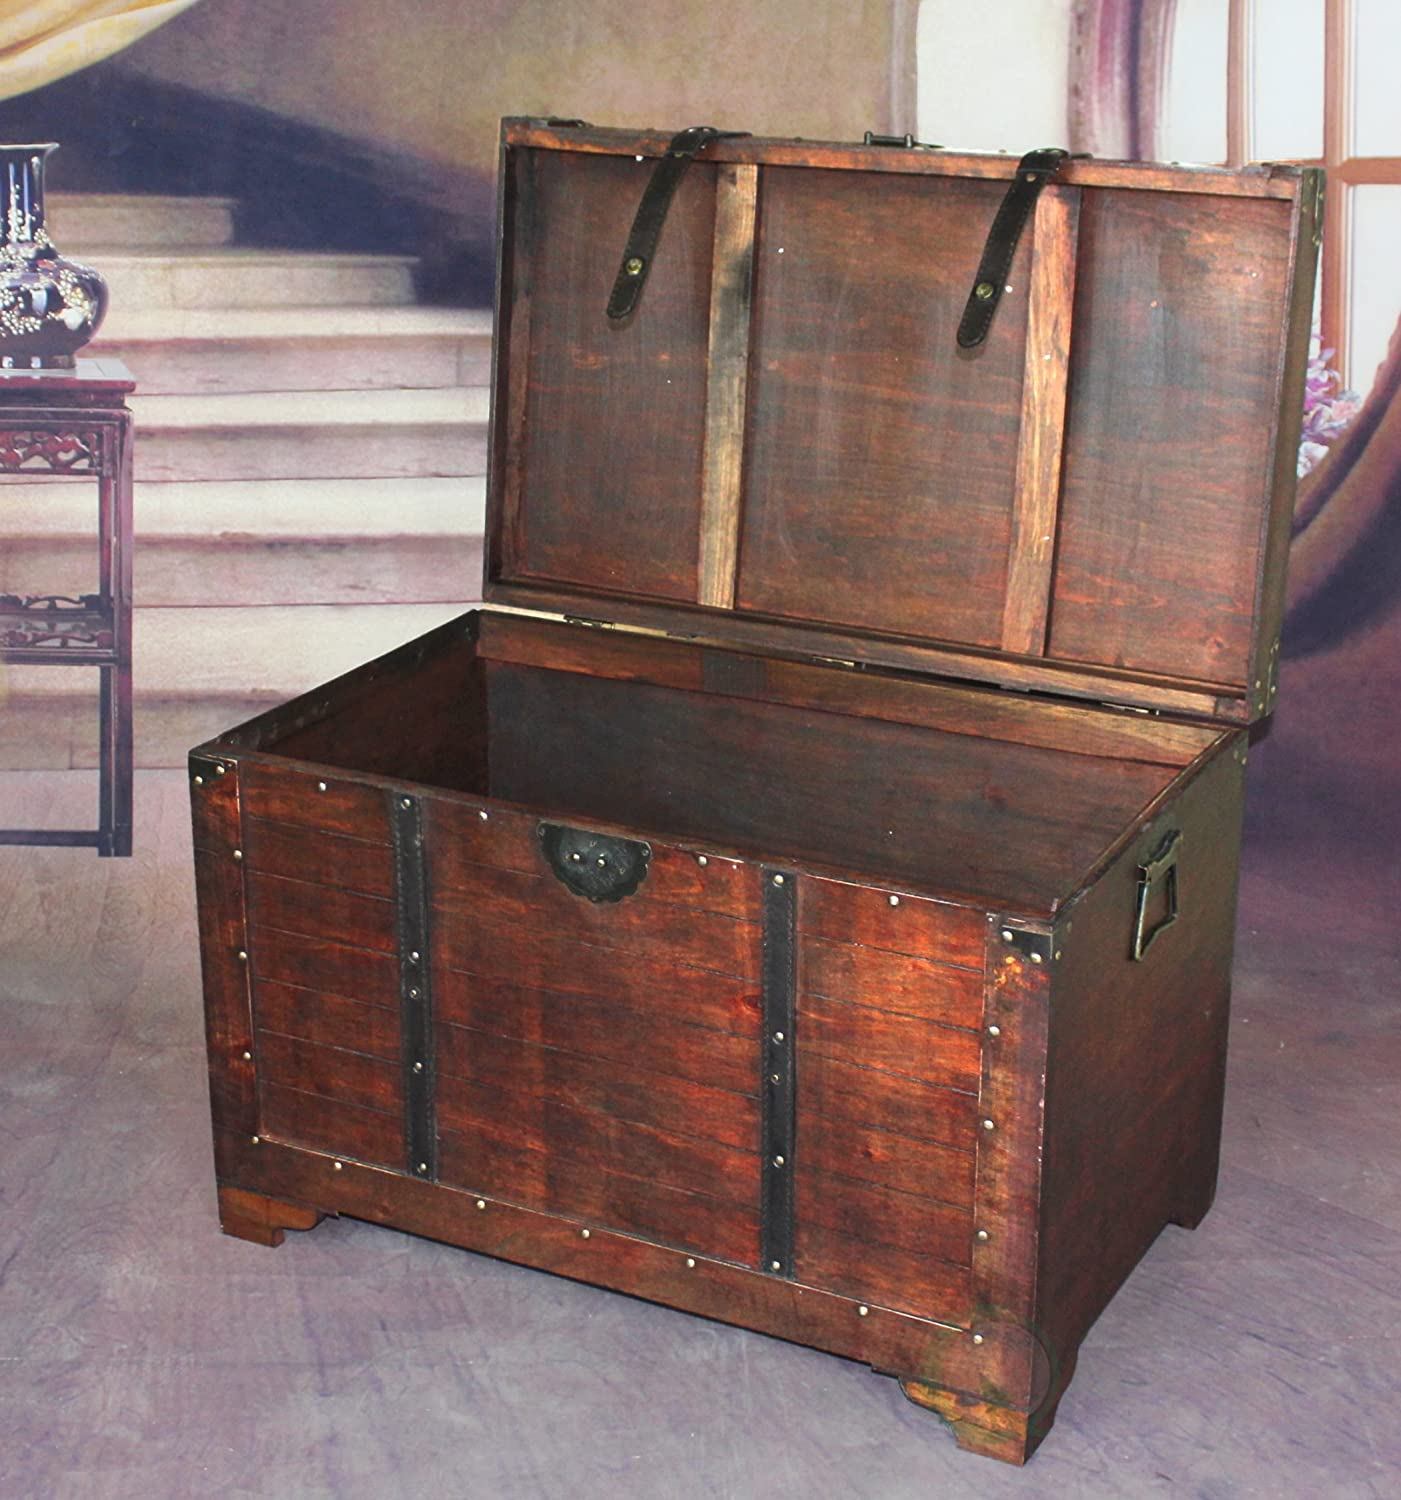 Amazon.com: Vintiquewise(TM) Old Fashioned Wooden Storage Treasure Trunk:  Kitchen U0026 Dining